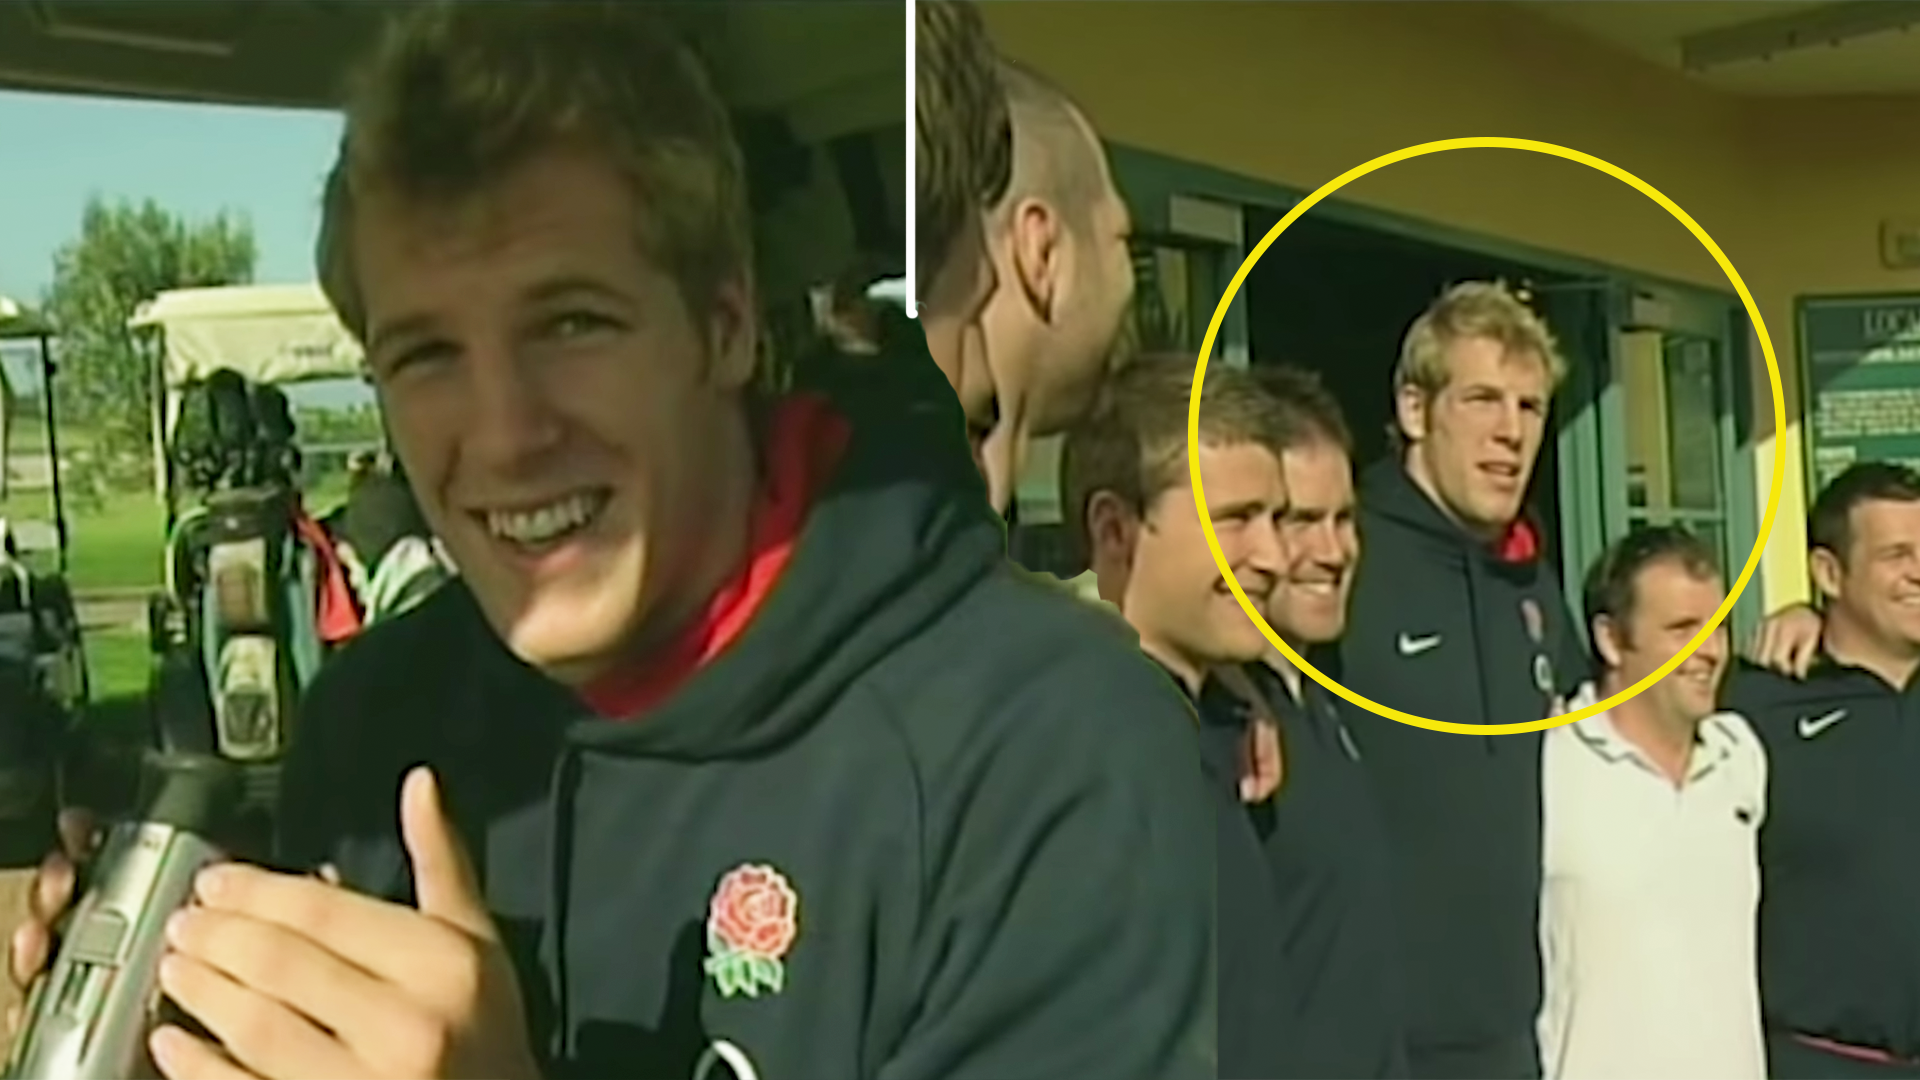 New England Rugby footage emerges showing a young James Haskell tormenting his teammates